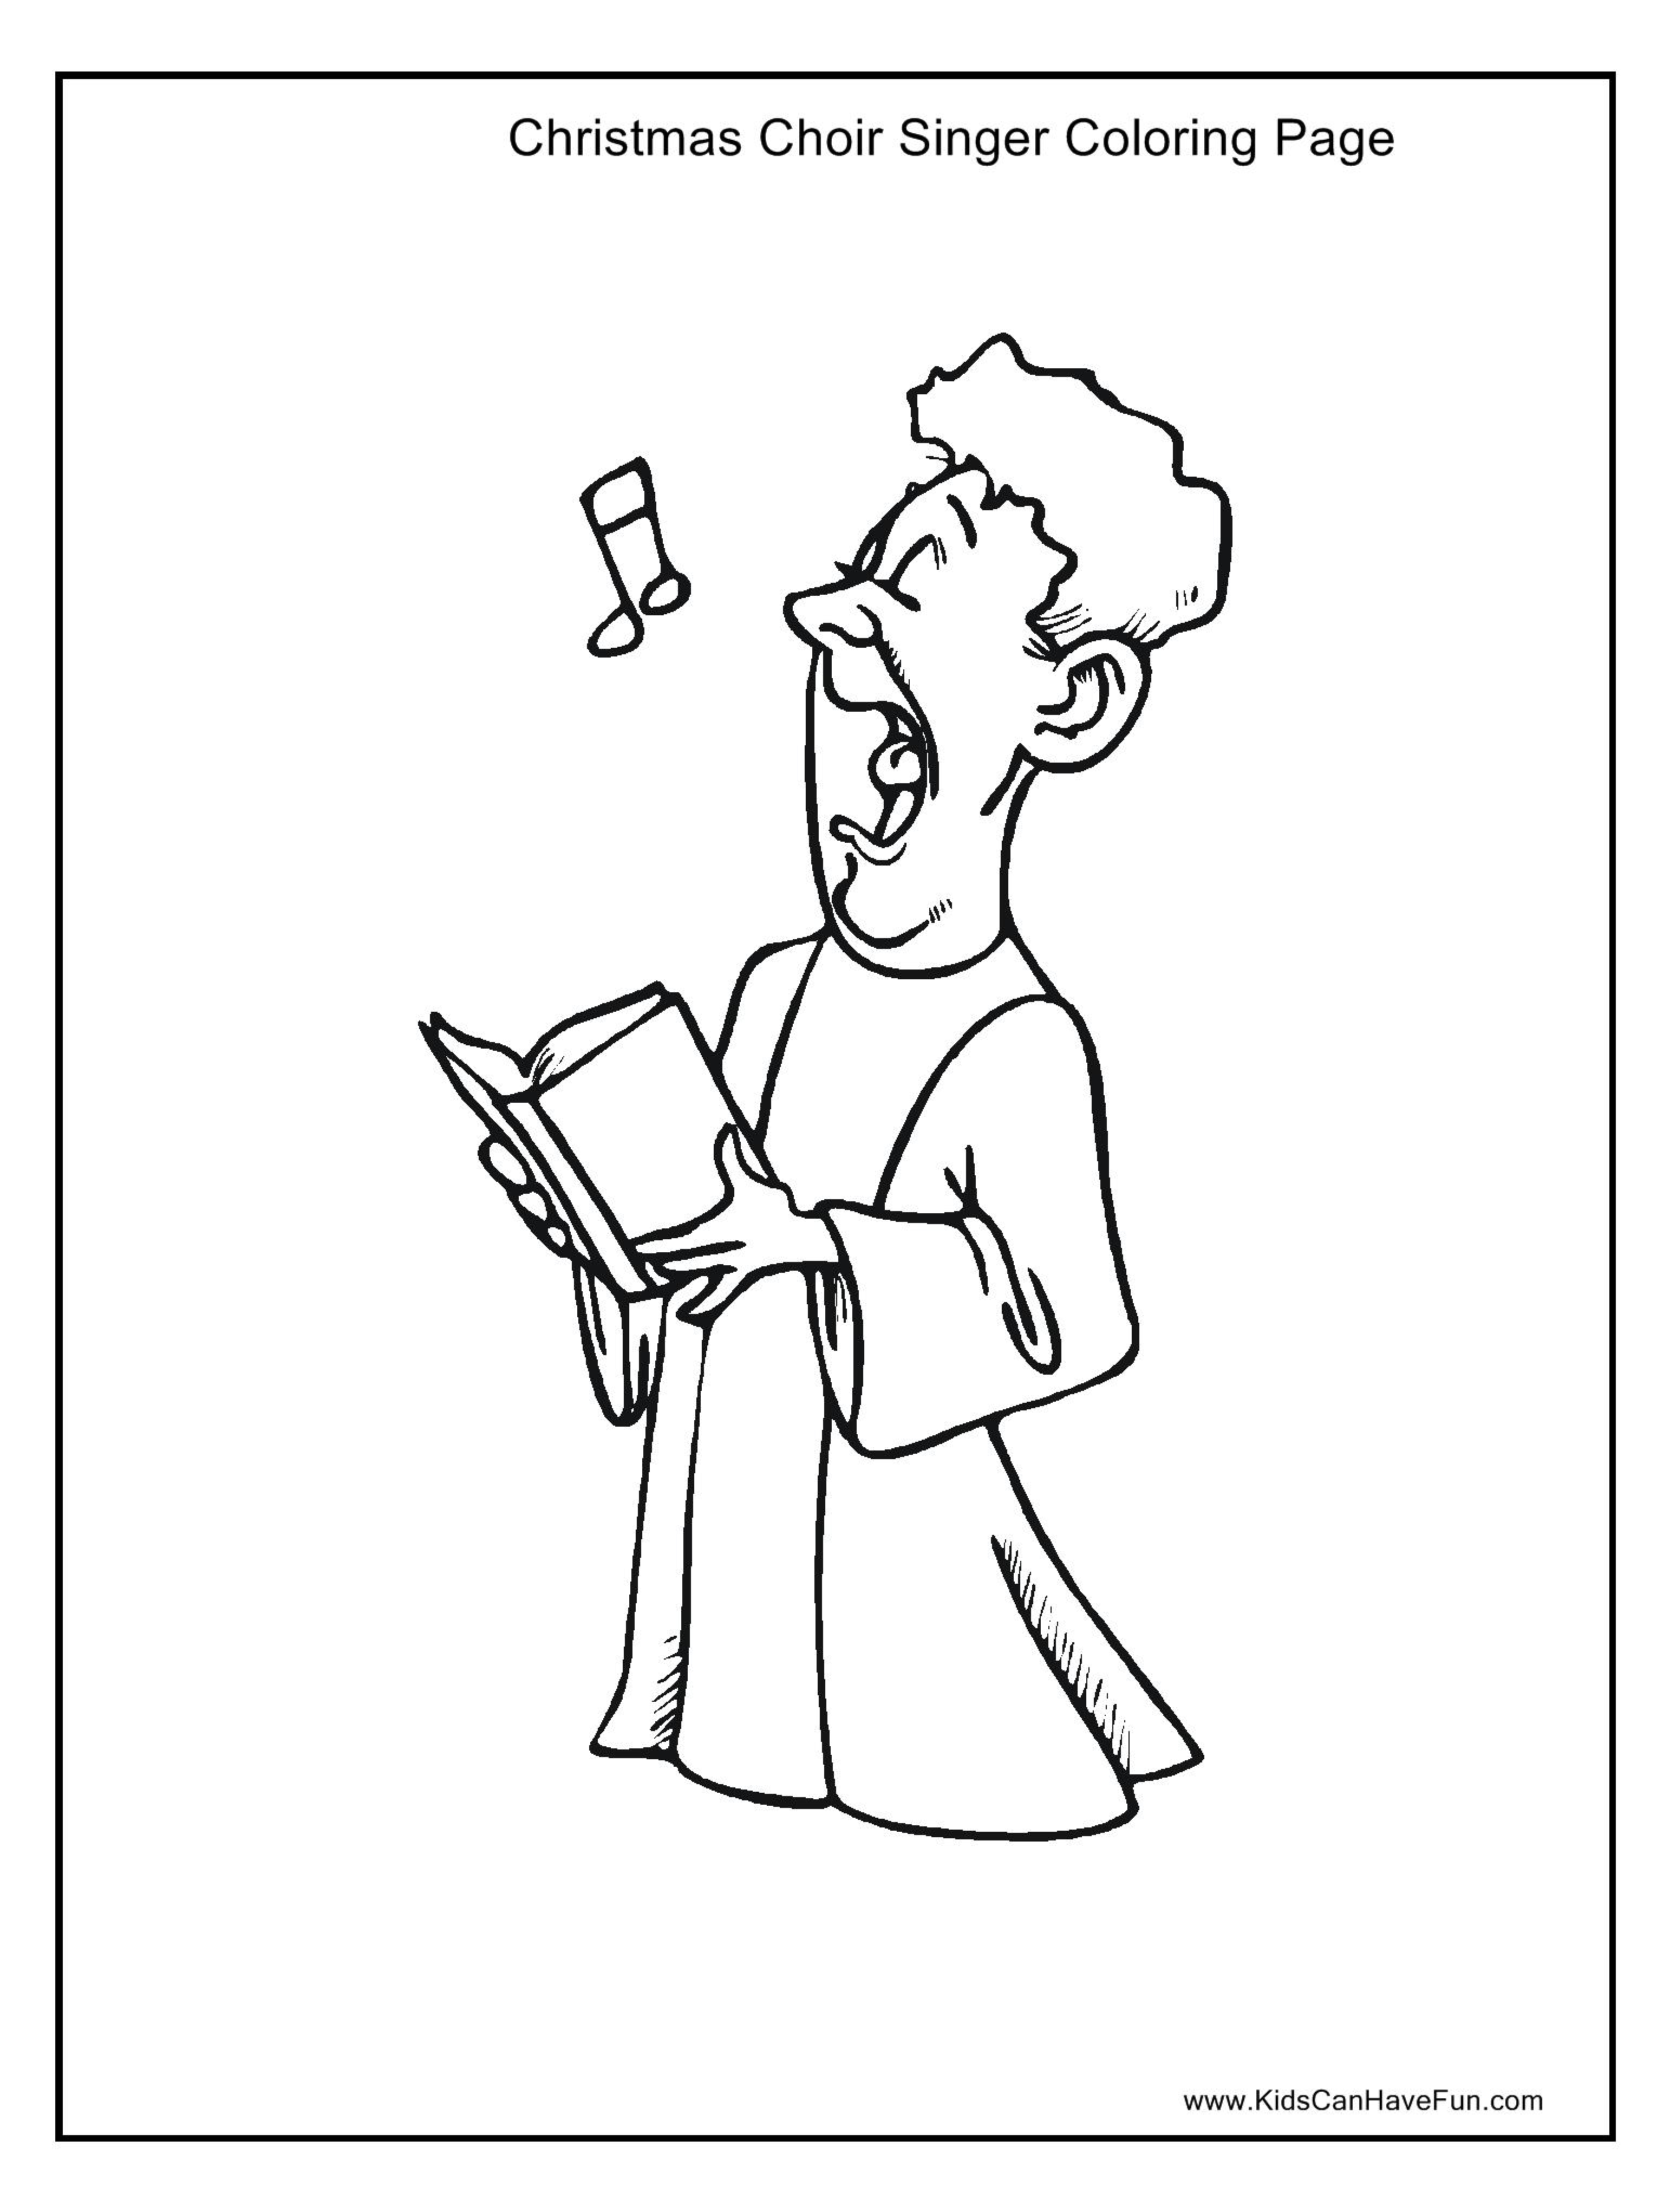 Christmas Choir Singer Coloring Page